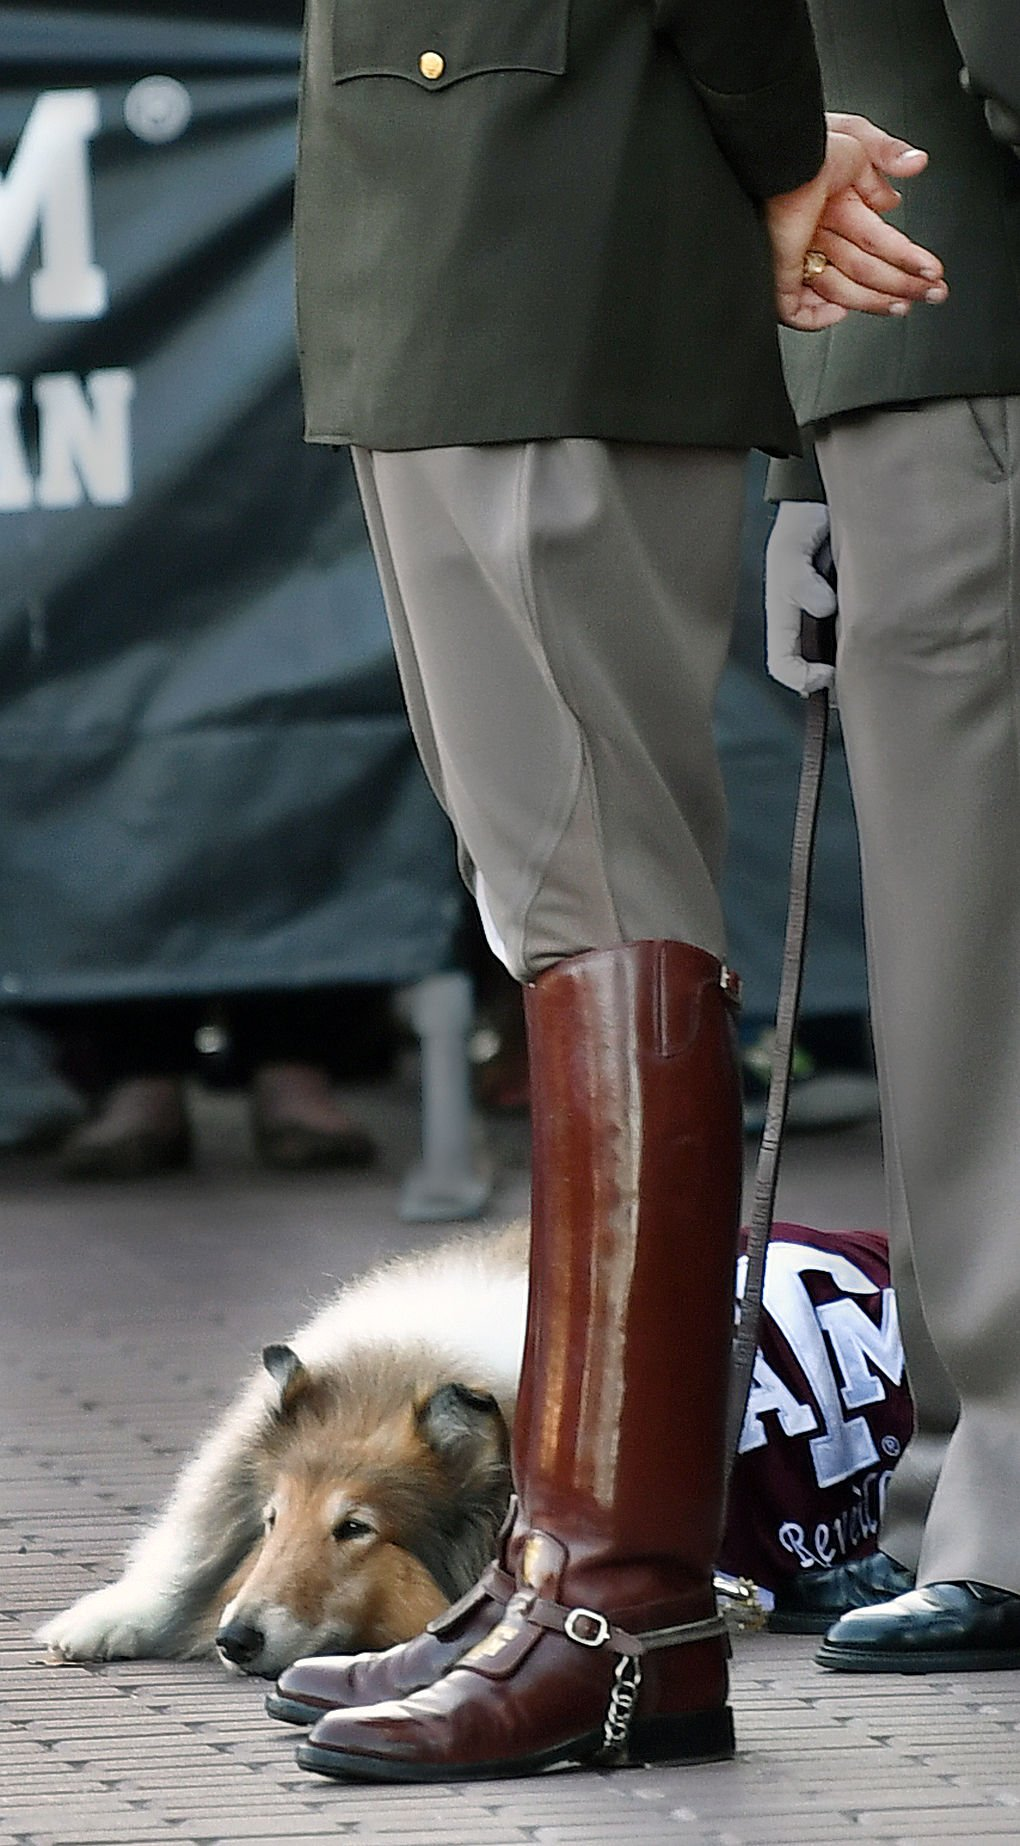 Reveille Viii Laid To Rest Outside Kyle Field Campus